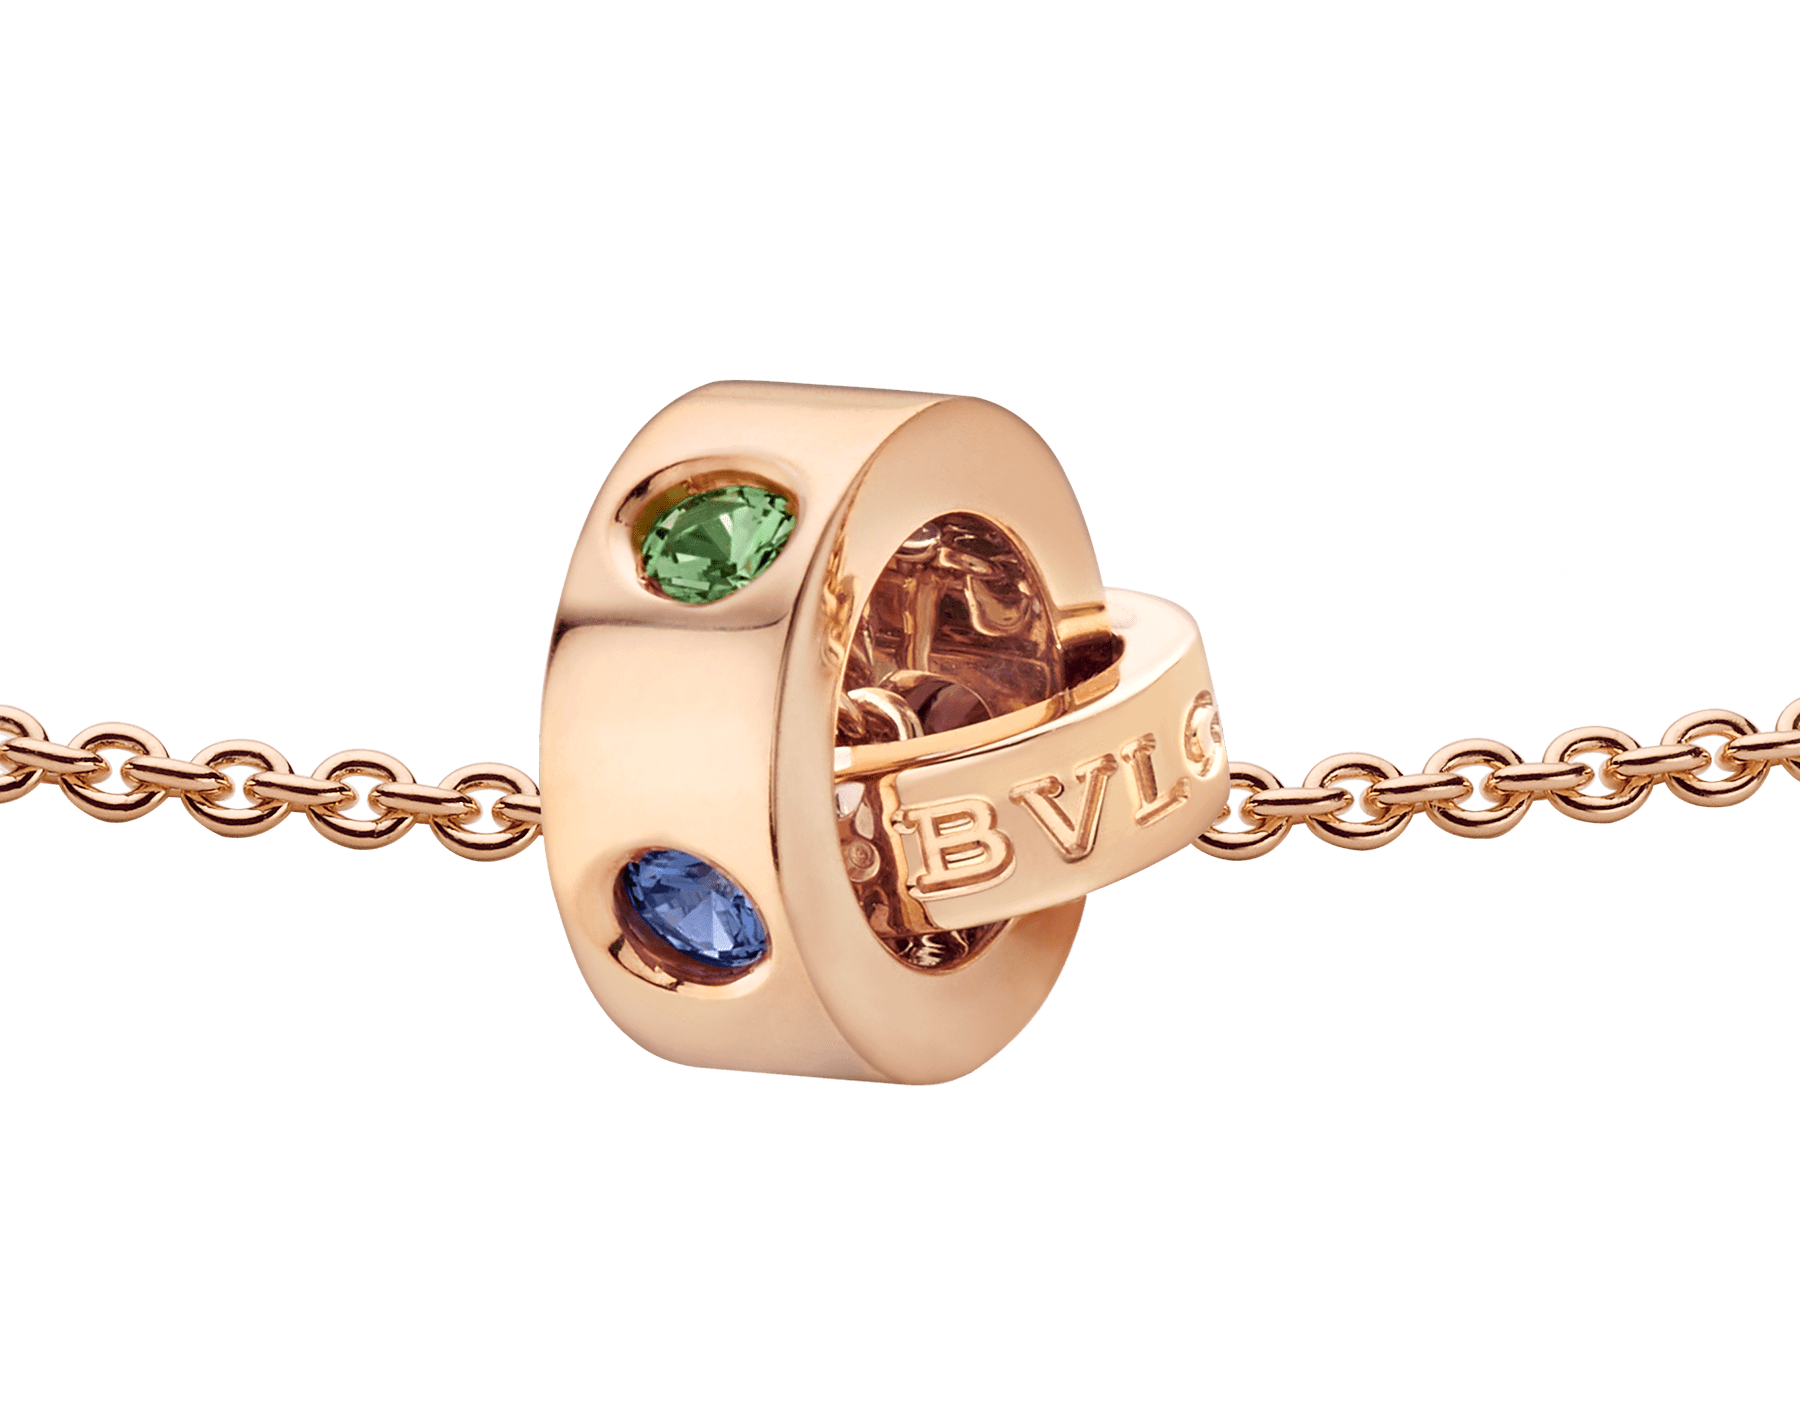 BVLGARI BVLGARI necklace with 18 kt rose gold chain and 18 kt rose gold pendant set with blue sapphires and tsavorites 352619 image 3